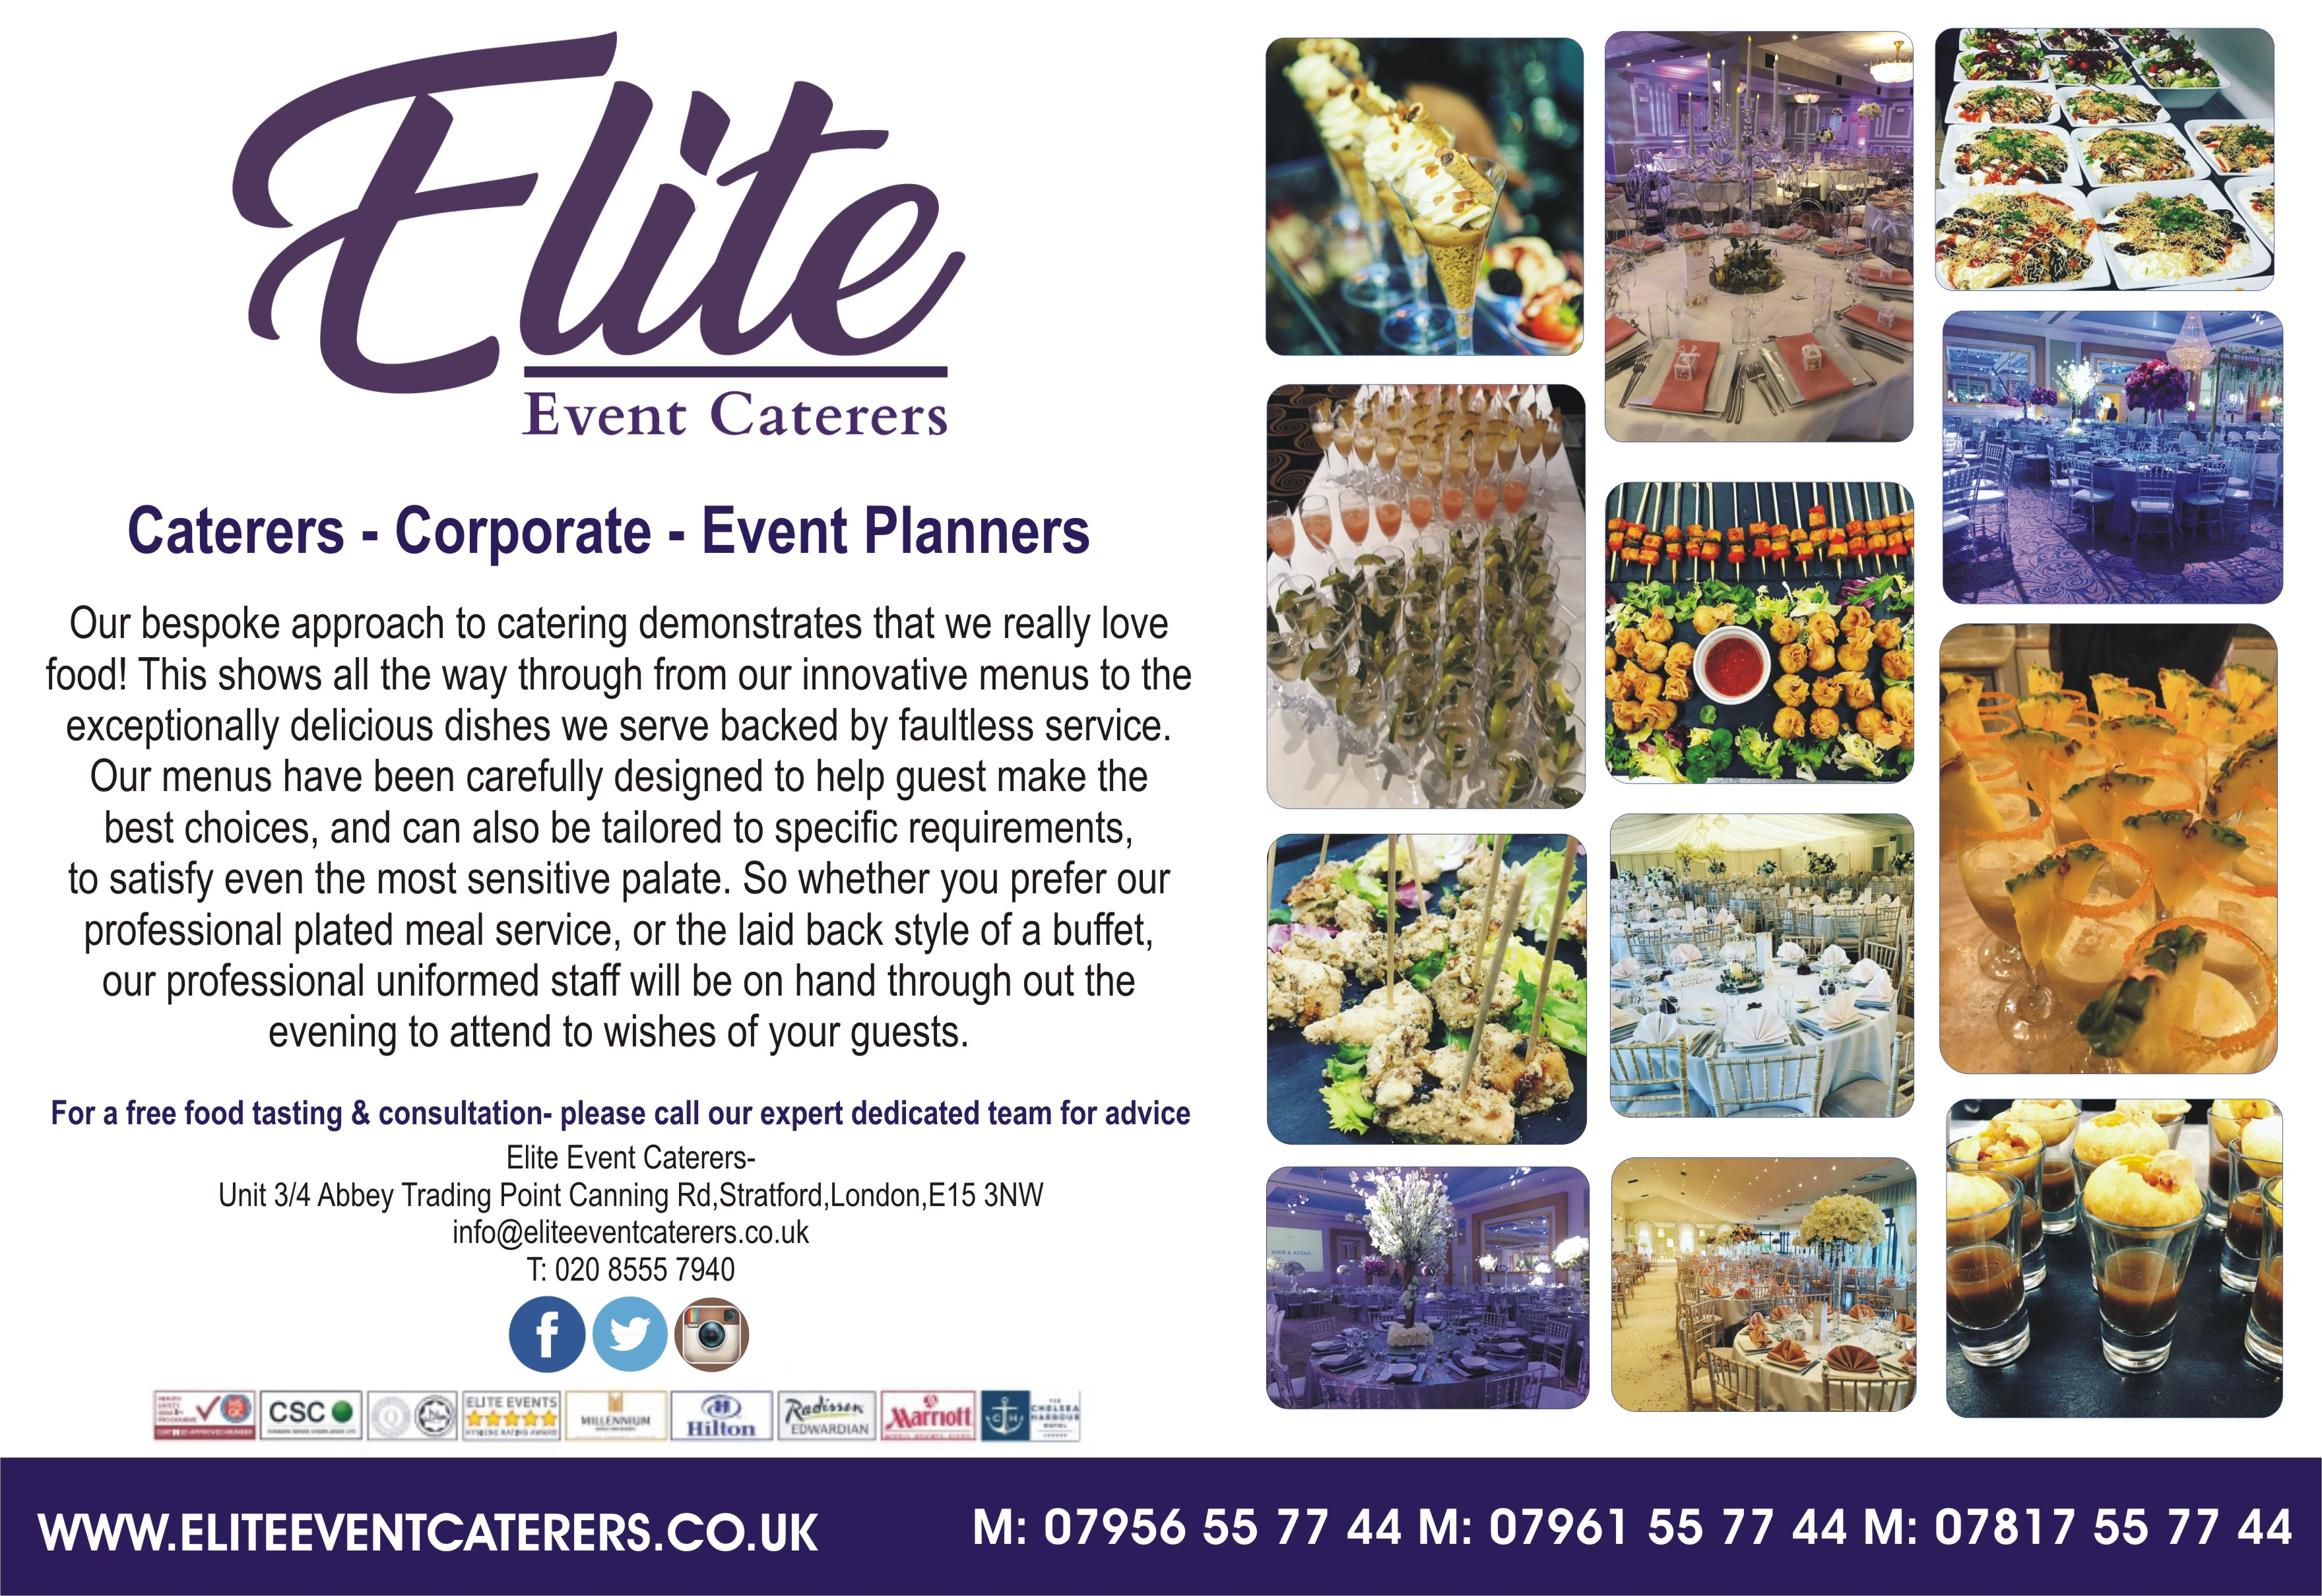 Elite Event Caterers